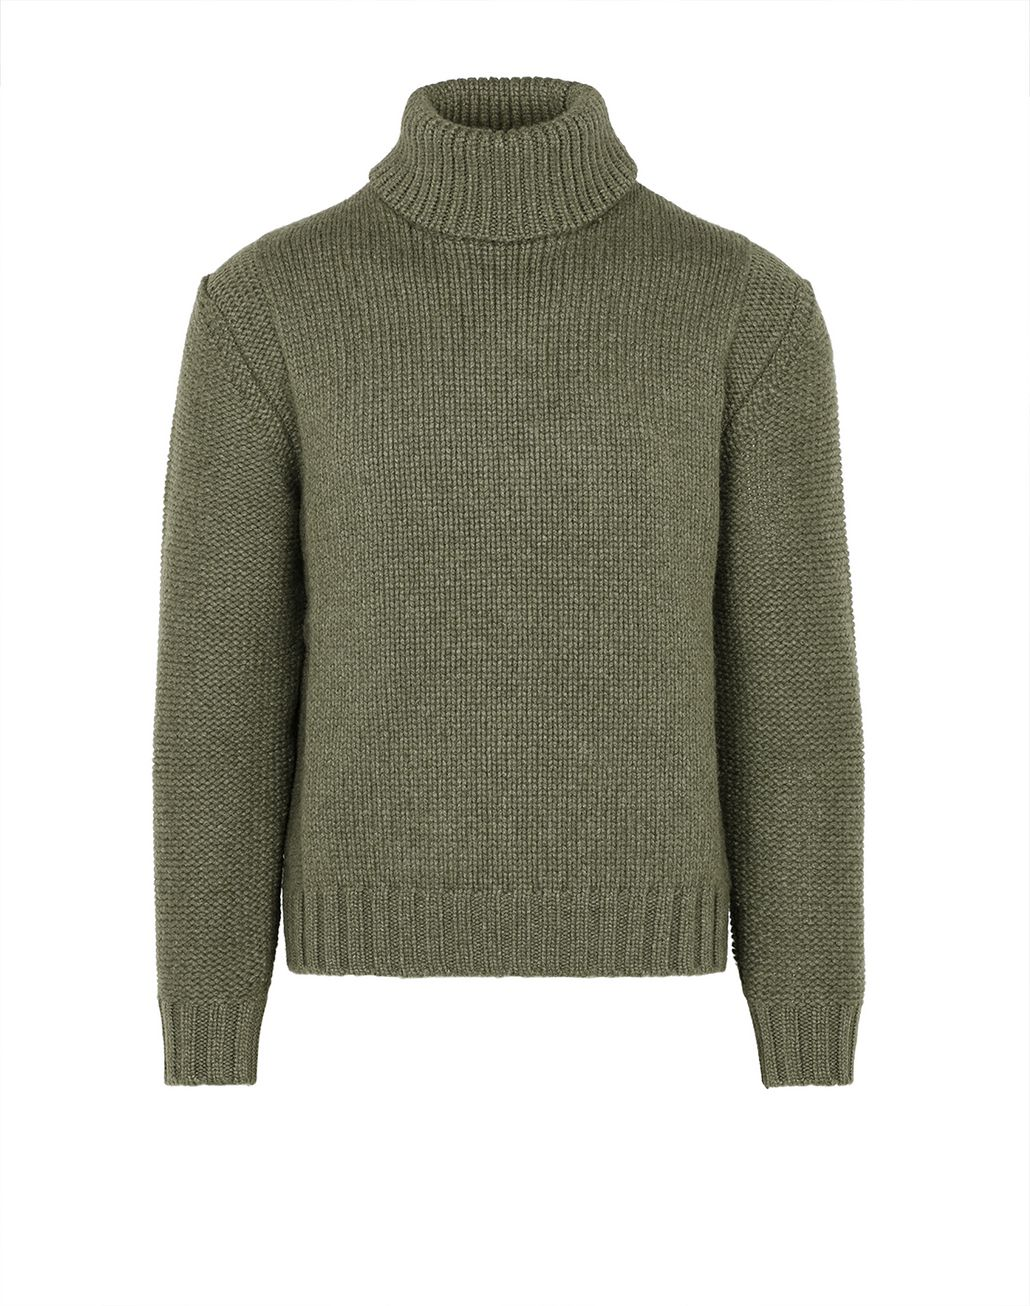 BRIONI Green Turtleneck Sweater Knitwear Man f